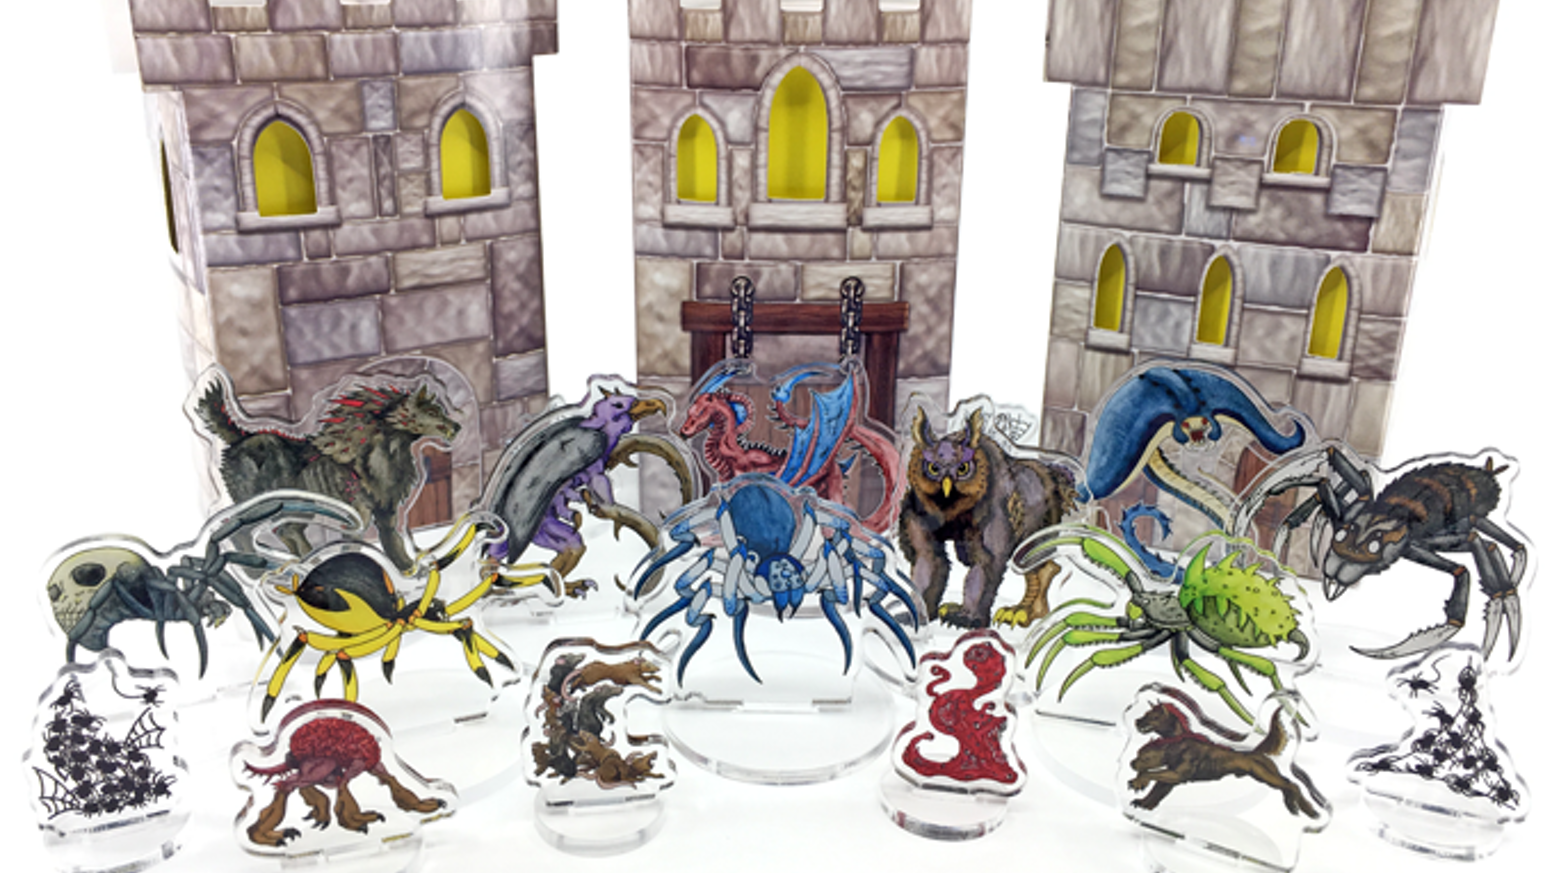 Traditional monster artwork printed between two clear acrylic layers. Convenient flat storage standees for role-playing tabletop games!